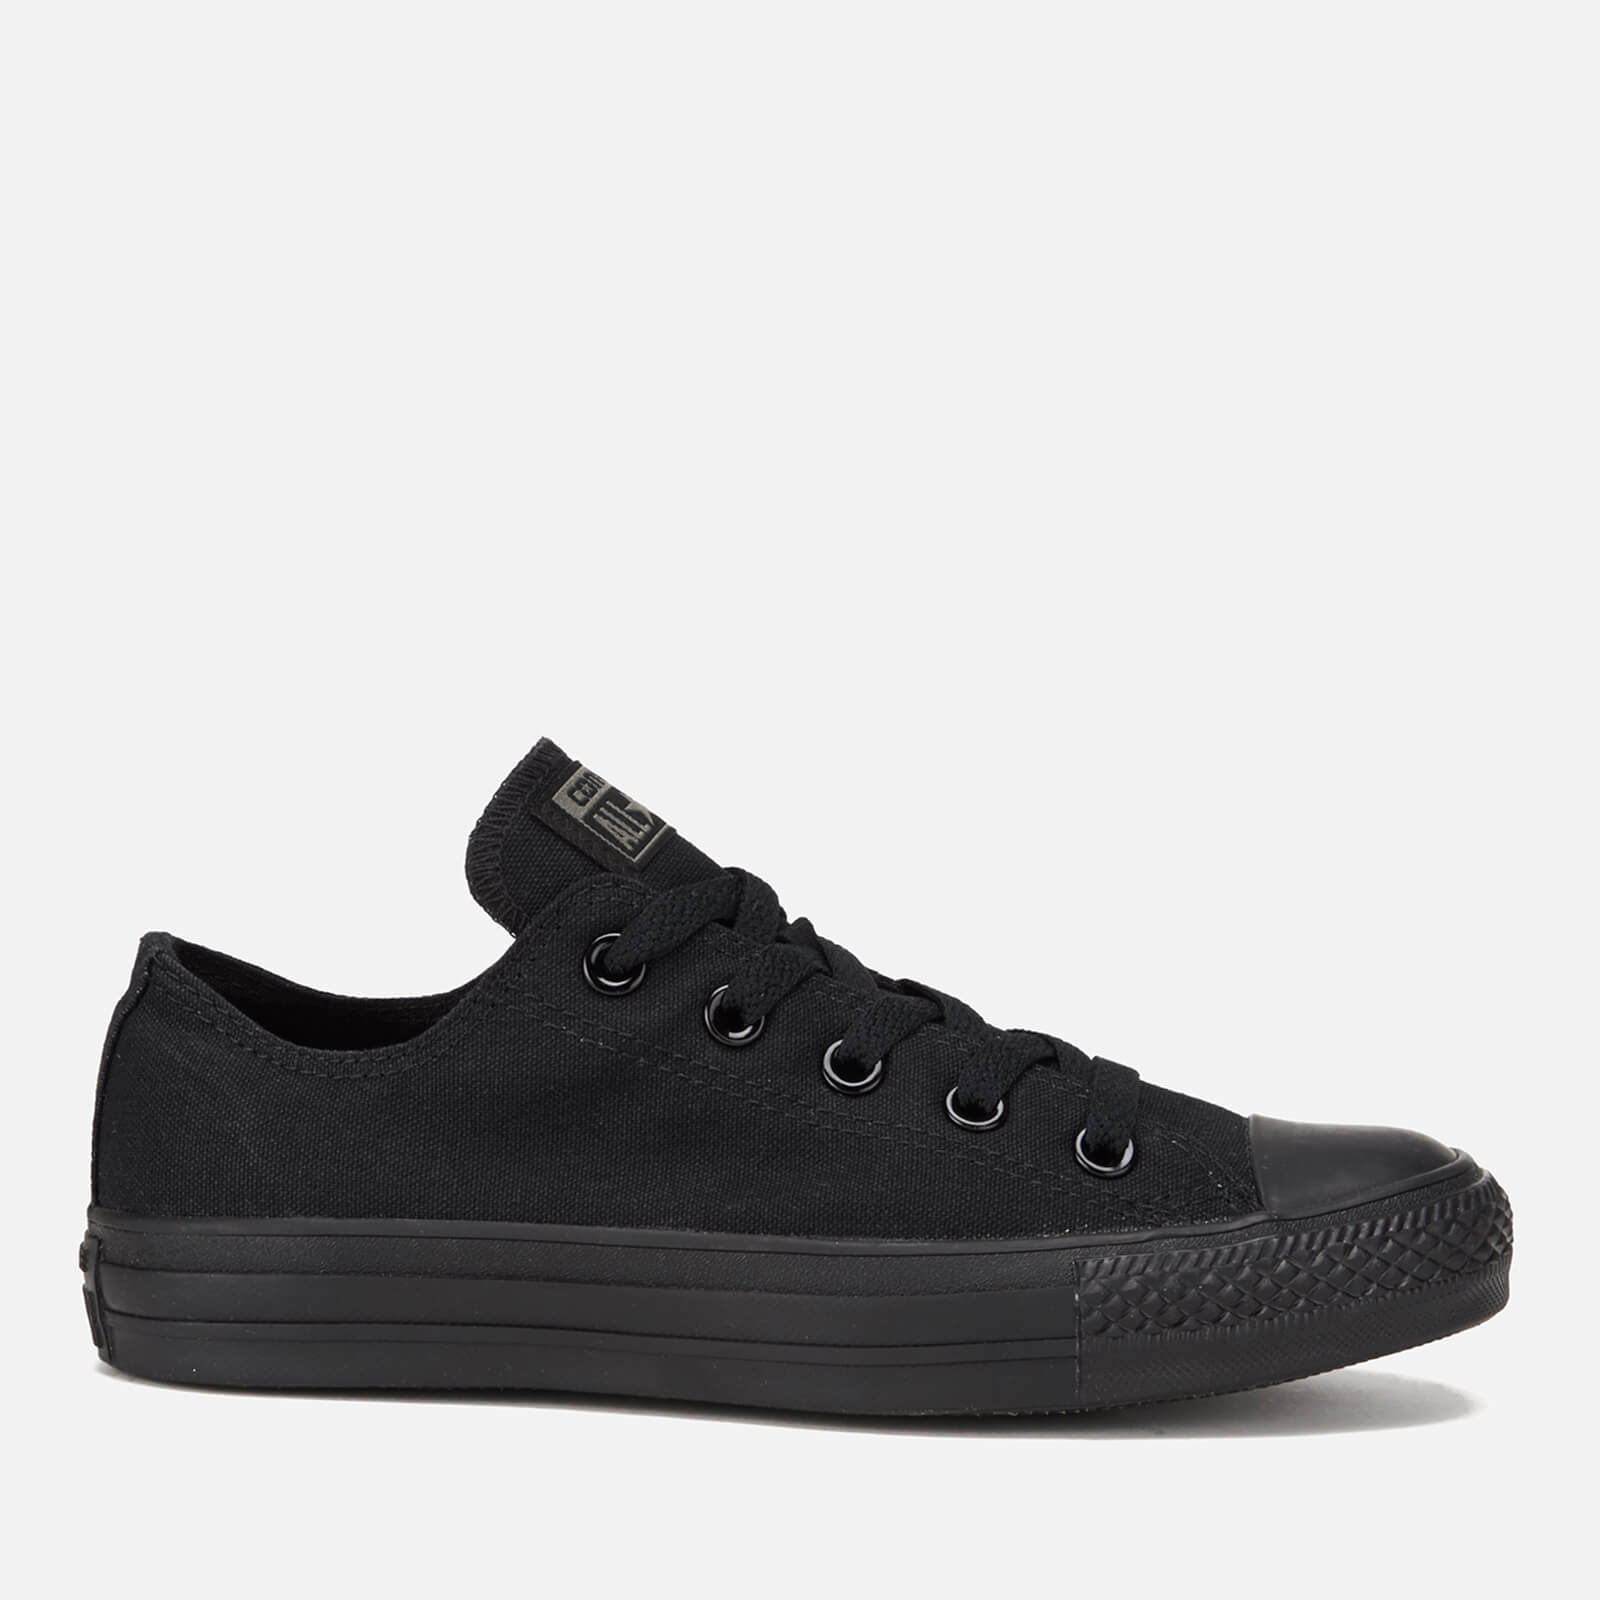 Converse Chuck Taylor All Star Ox Canvas Trainers Black Monochrome Uk 8